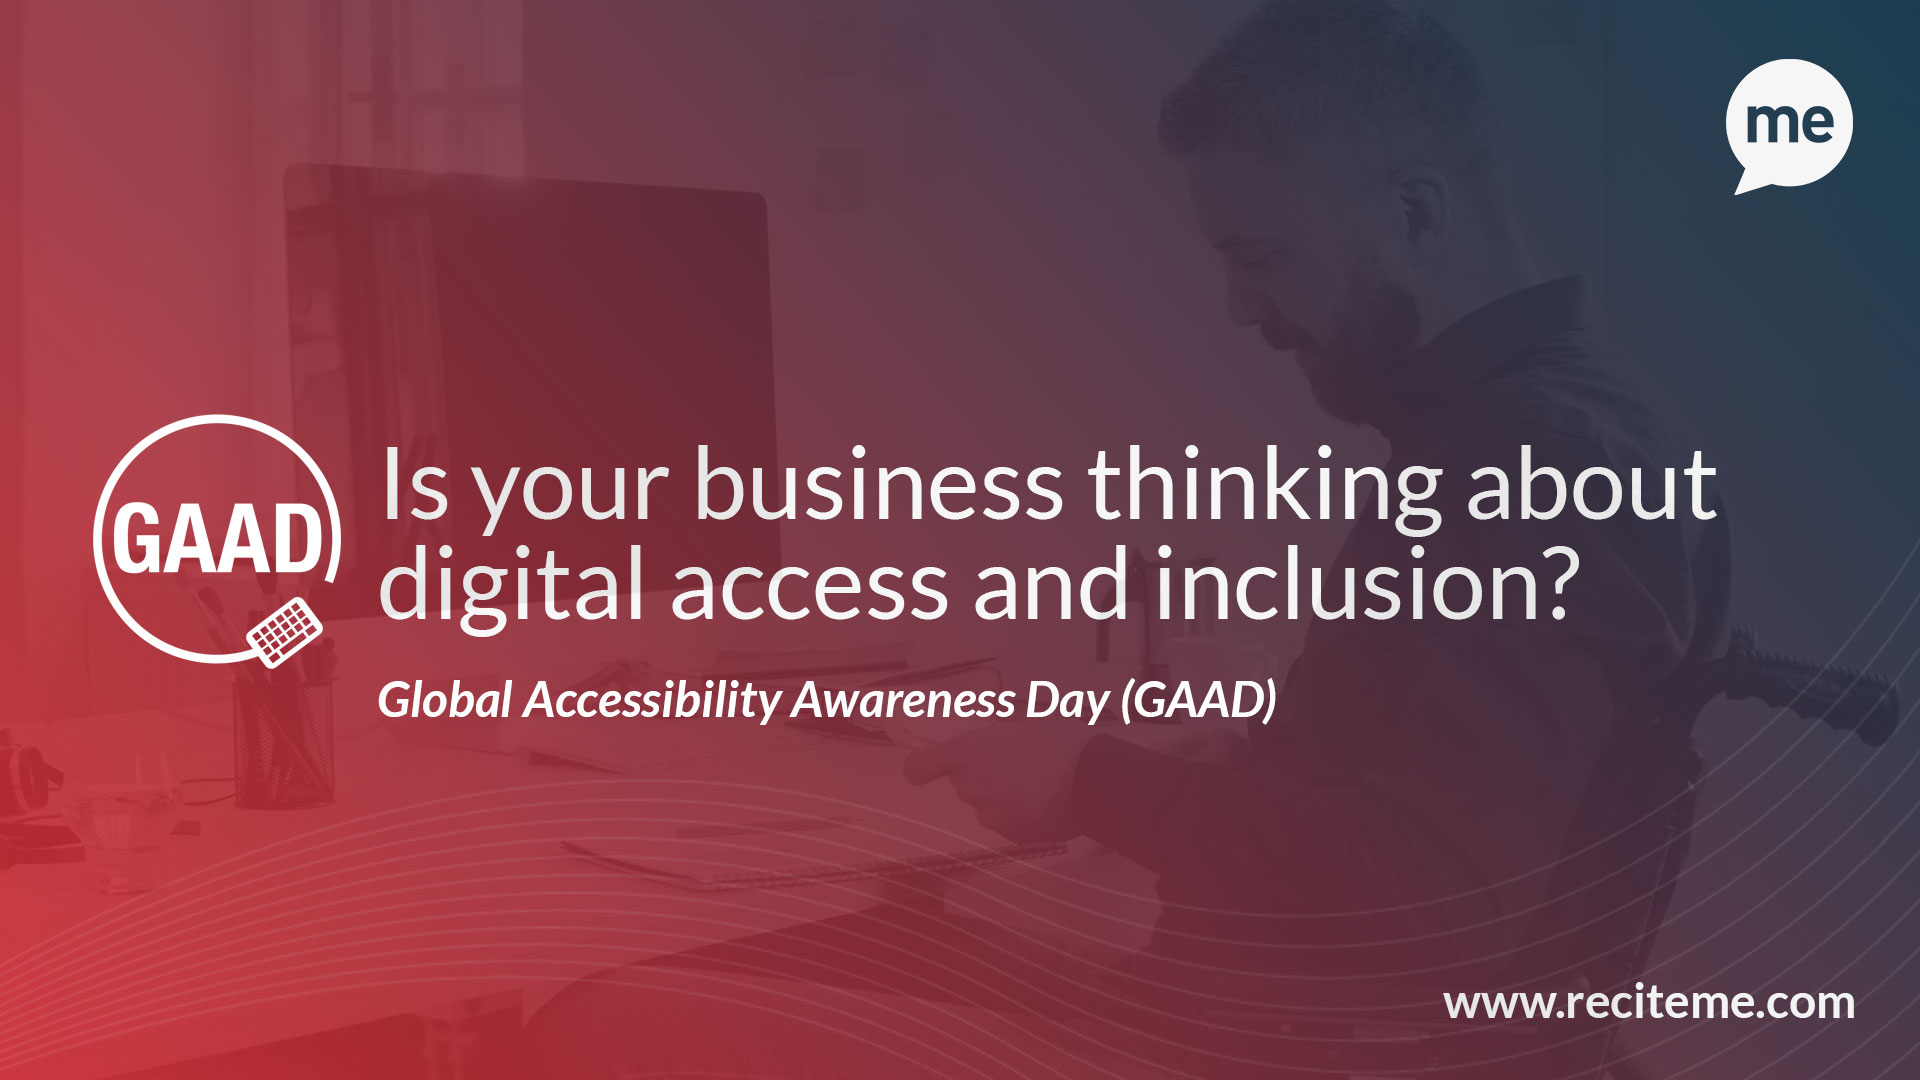 GAAD Is your business thinking about digital access and inclusion